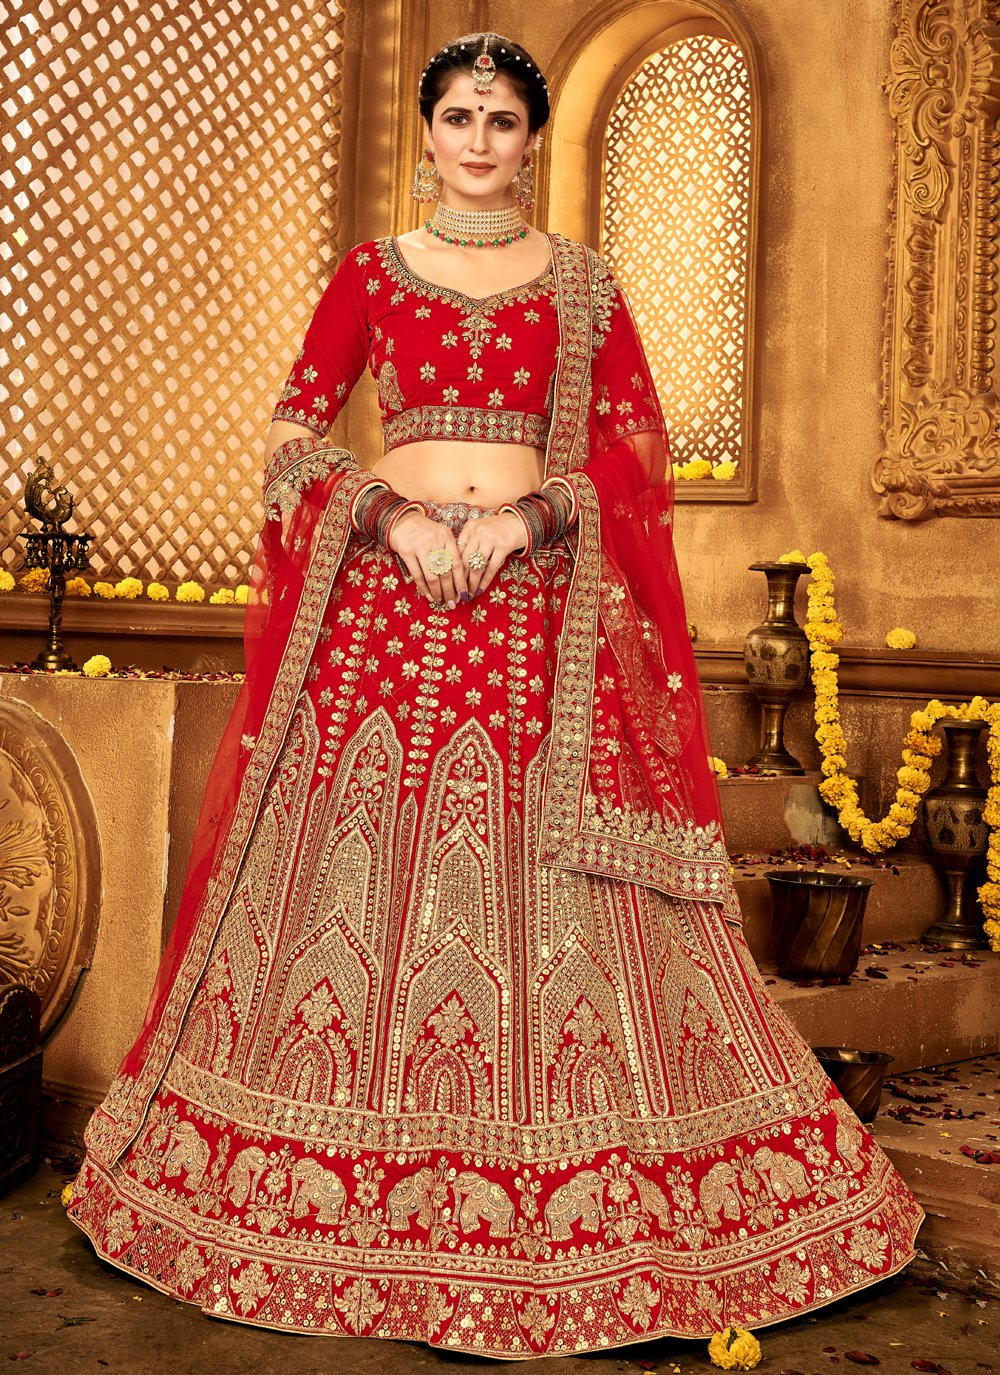 A Line Lehenga Choli Lace Velvet in Red